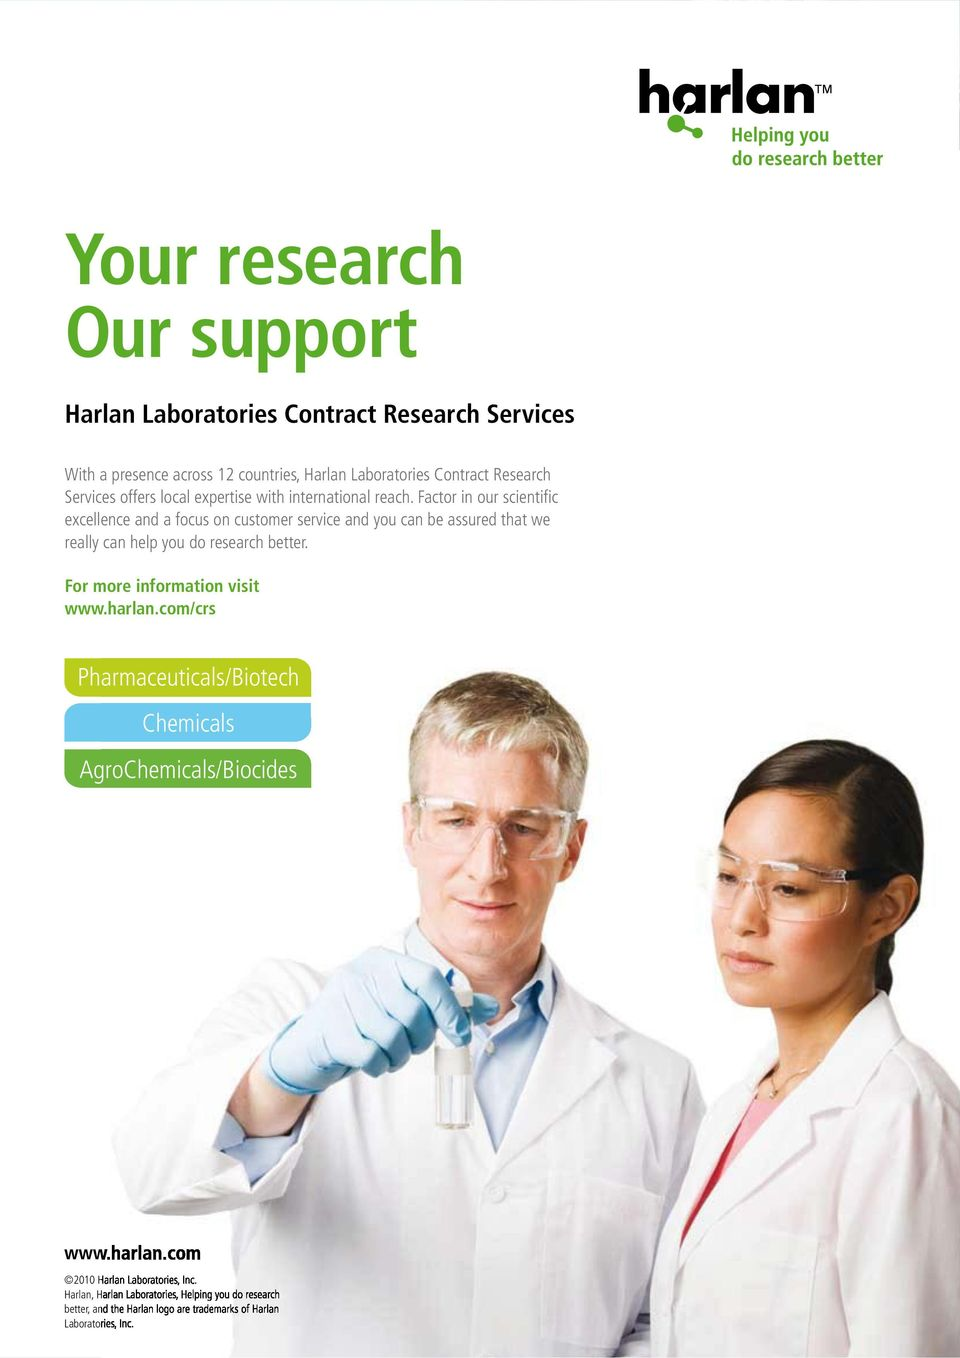 Factor in our scientific excellence and a focus on customer service and you can be assured that we really can help you do research